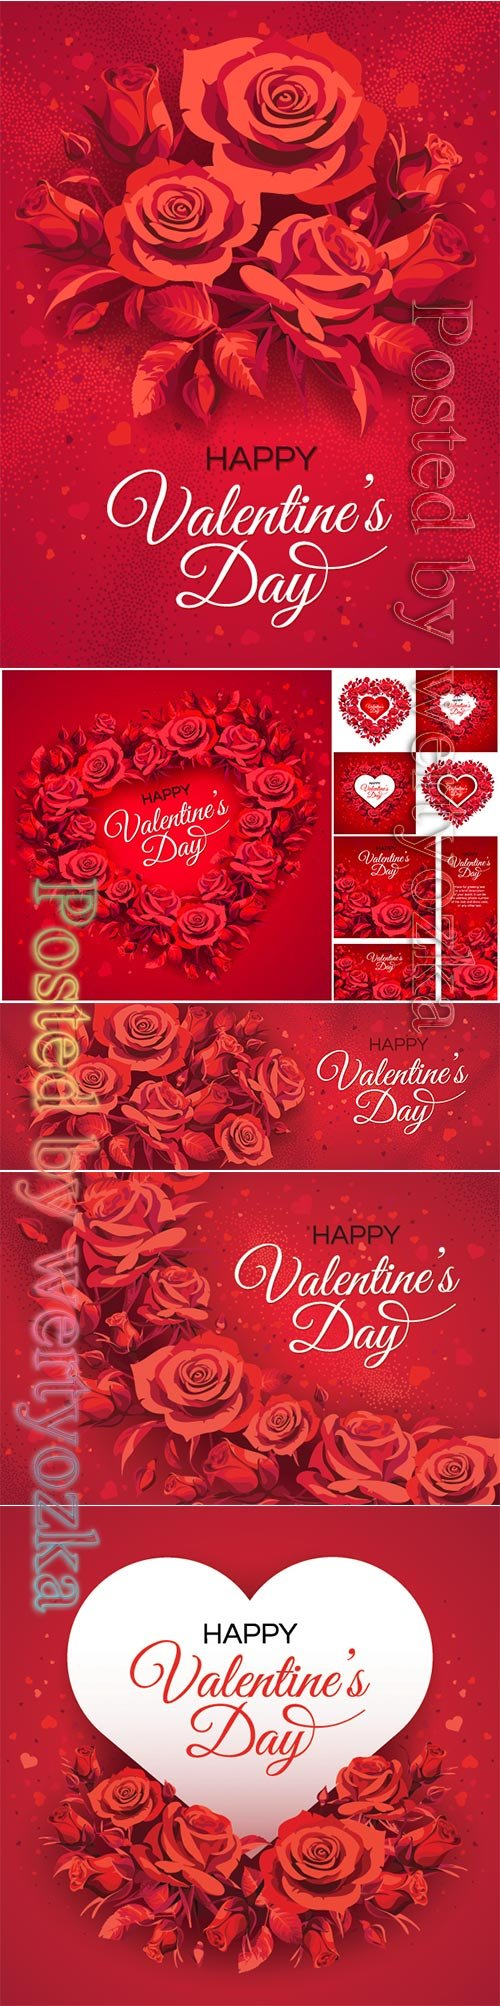 Valentine's Day greeting card templates with red roses